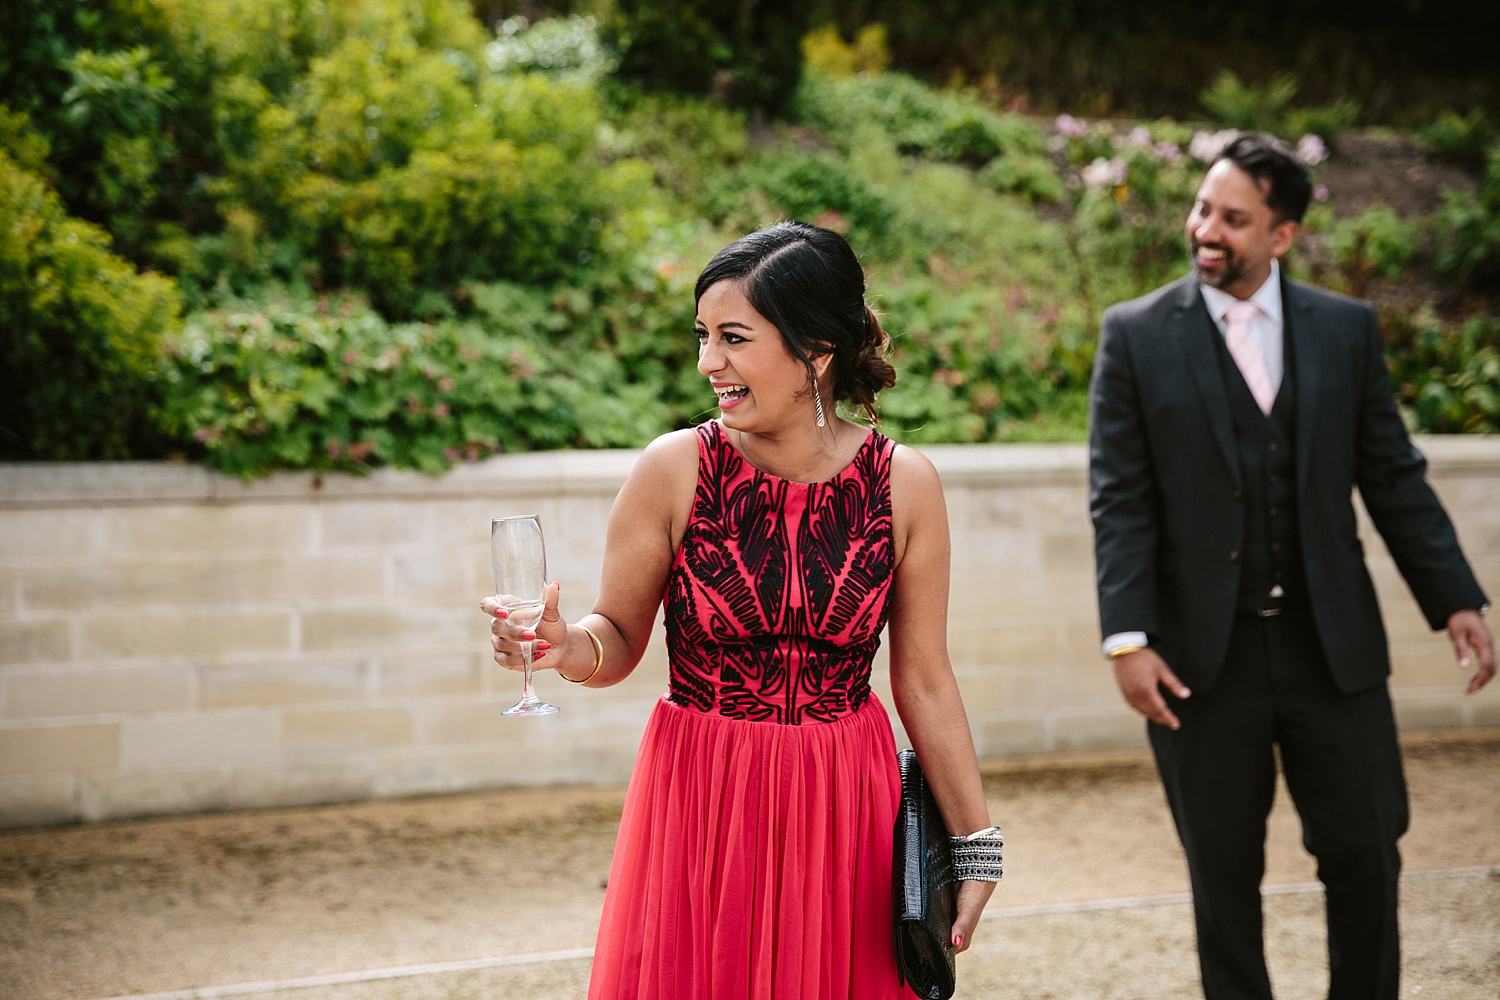 Natlie-Matthew-yorkshire-natural-relaxed-fun-documentary-reportage-candid-wedding-photography-photographer-Derby-Nottingham-Derbyshire-Nottinghamshire-Leicestershire-Lincolnshire-East-Midlands-64.jpg